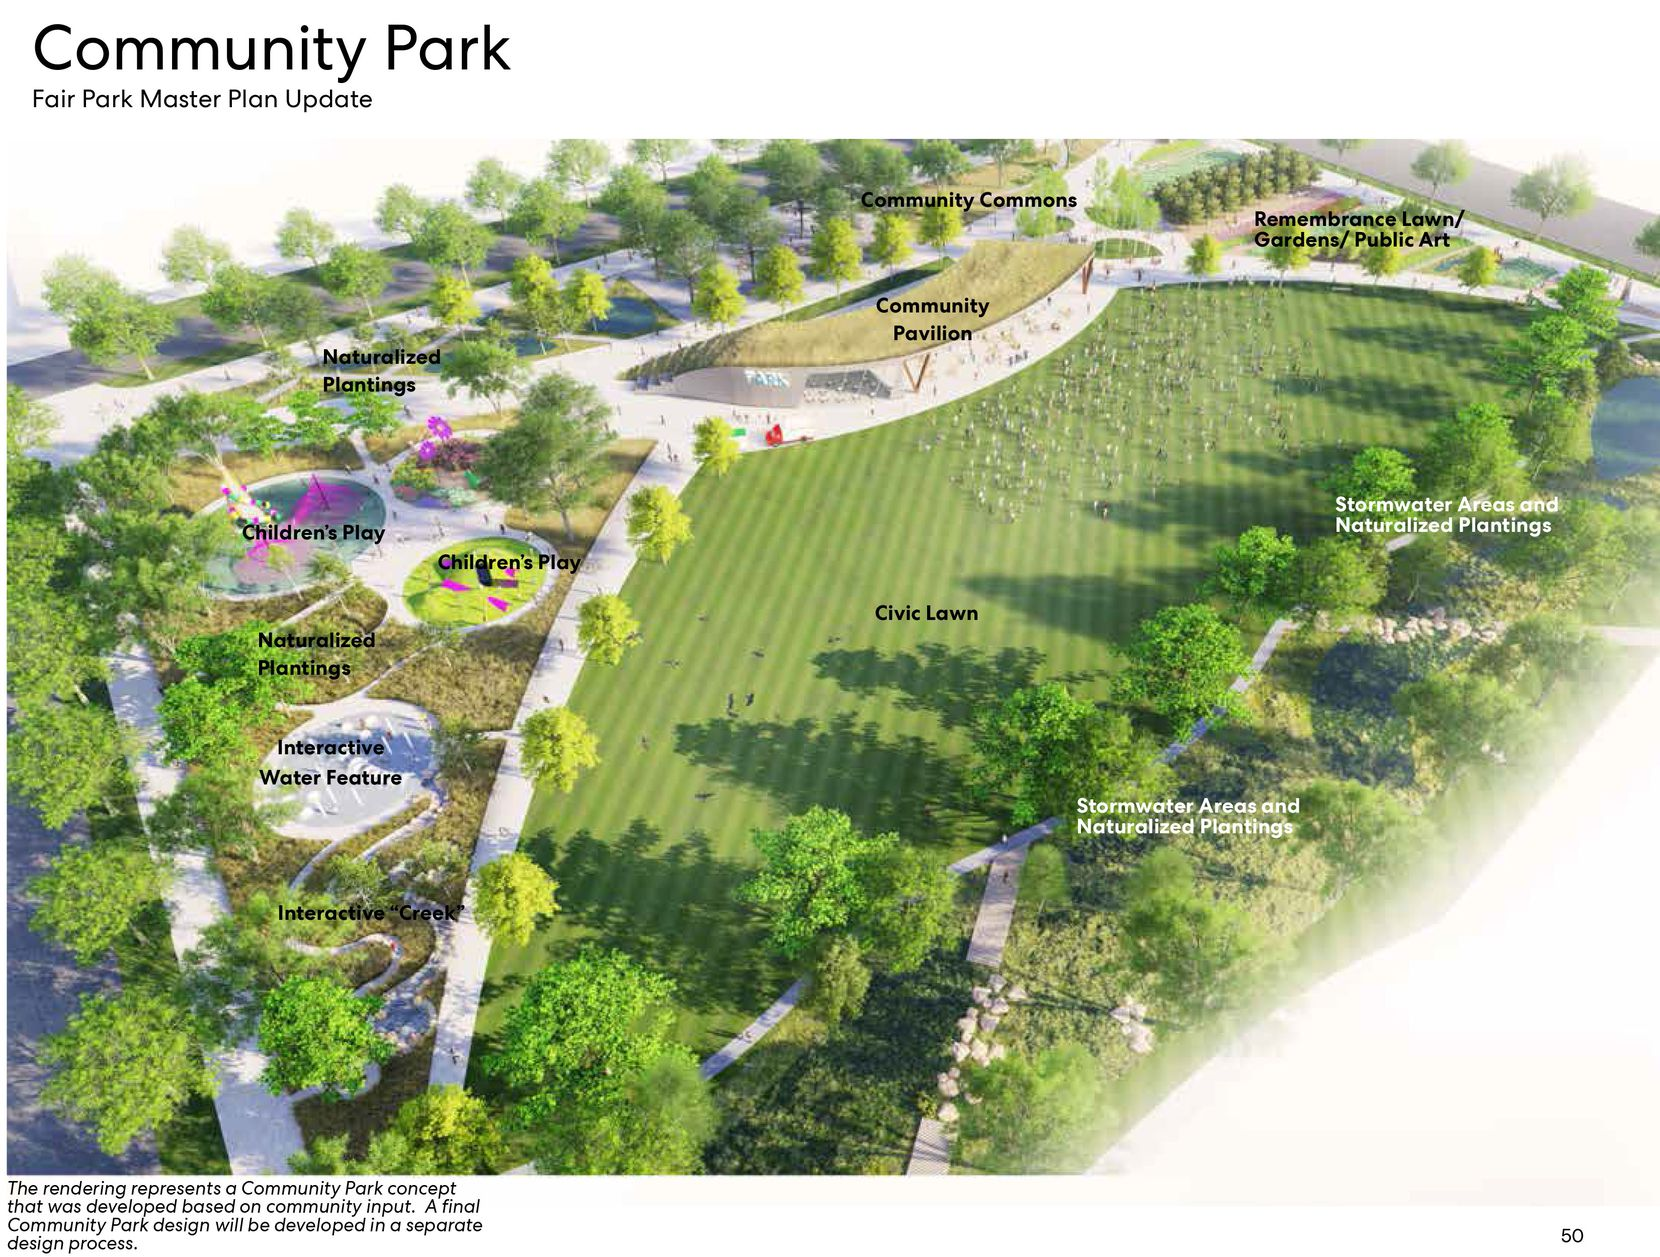 A conceptual rendering from the Fair Park Master Plan Update, as presented to the Dallas Park Board in June 2020, shows an idea for a Community Park that would replace acres of concrete on the park's southeast side, along Fitzhugh bordering the residential neighborhood. A final Community Park design will be developed in a separate design process.